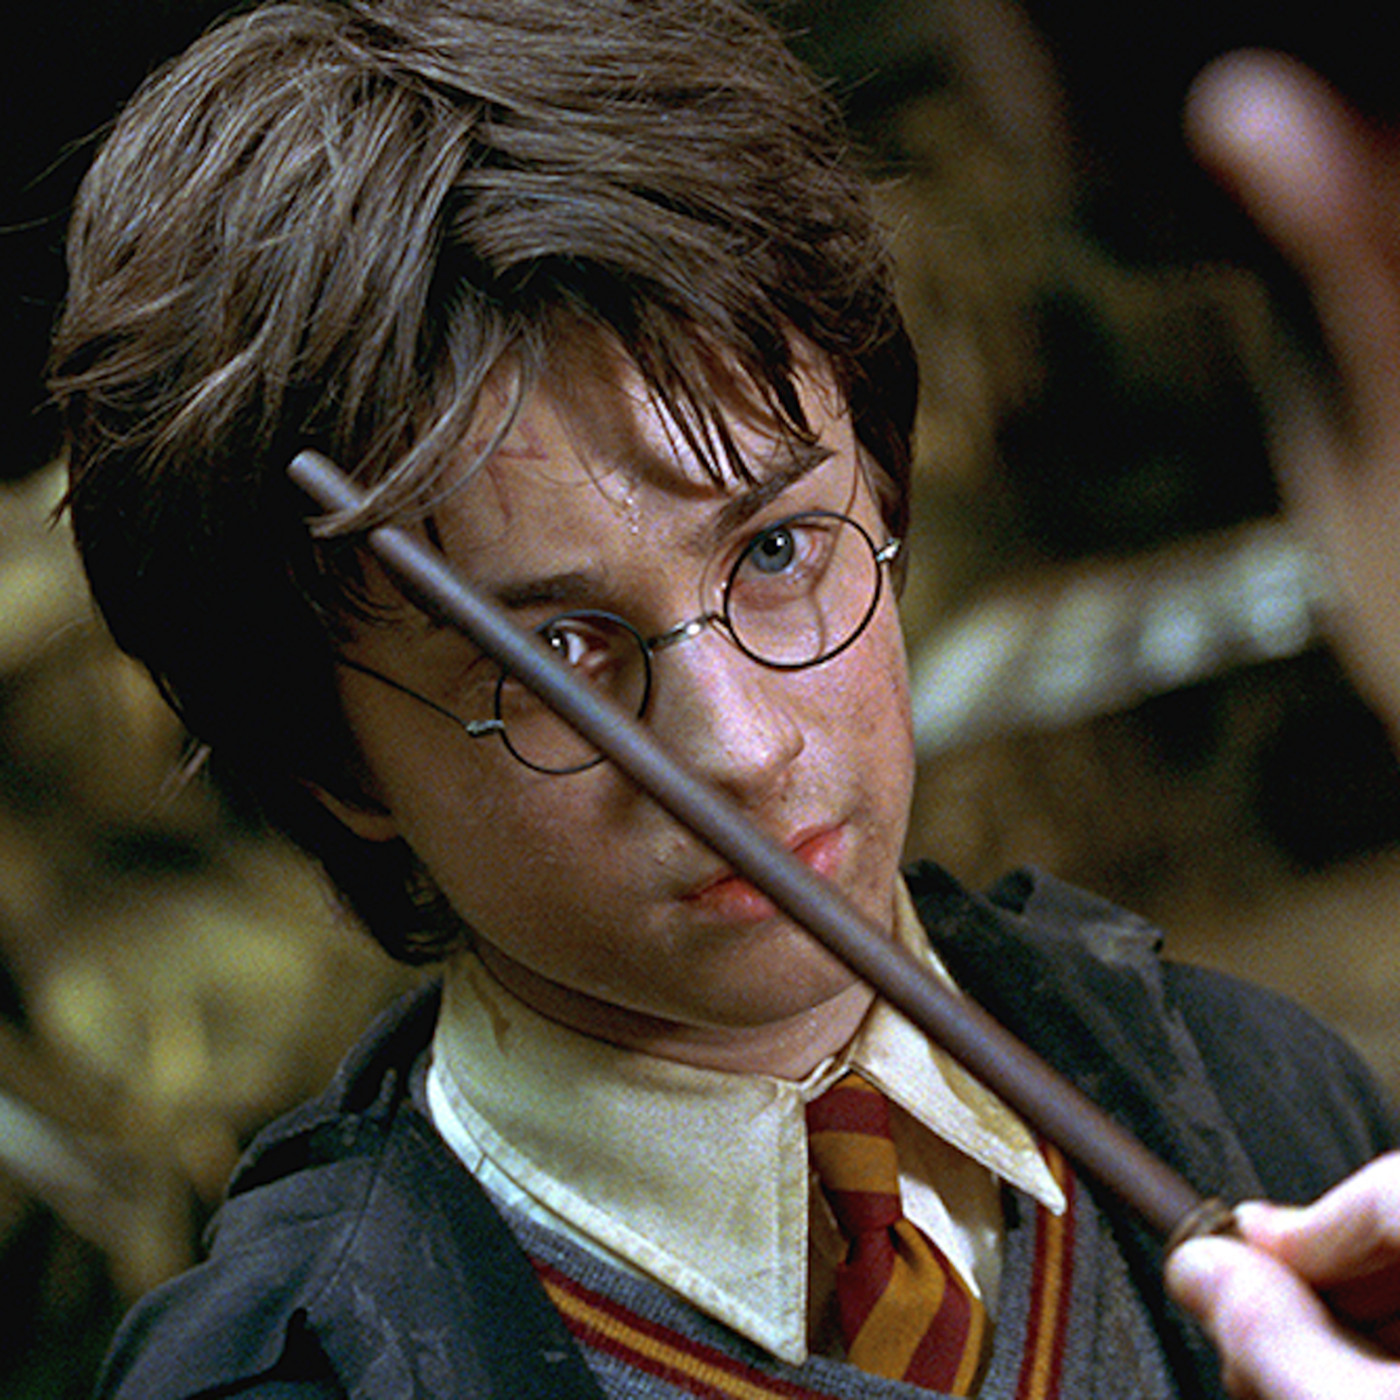 Harry Potter RPG footage apparently leaks online - The Verge